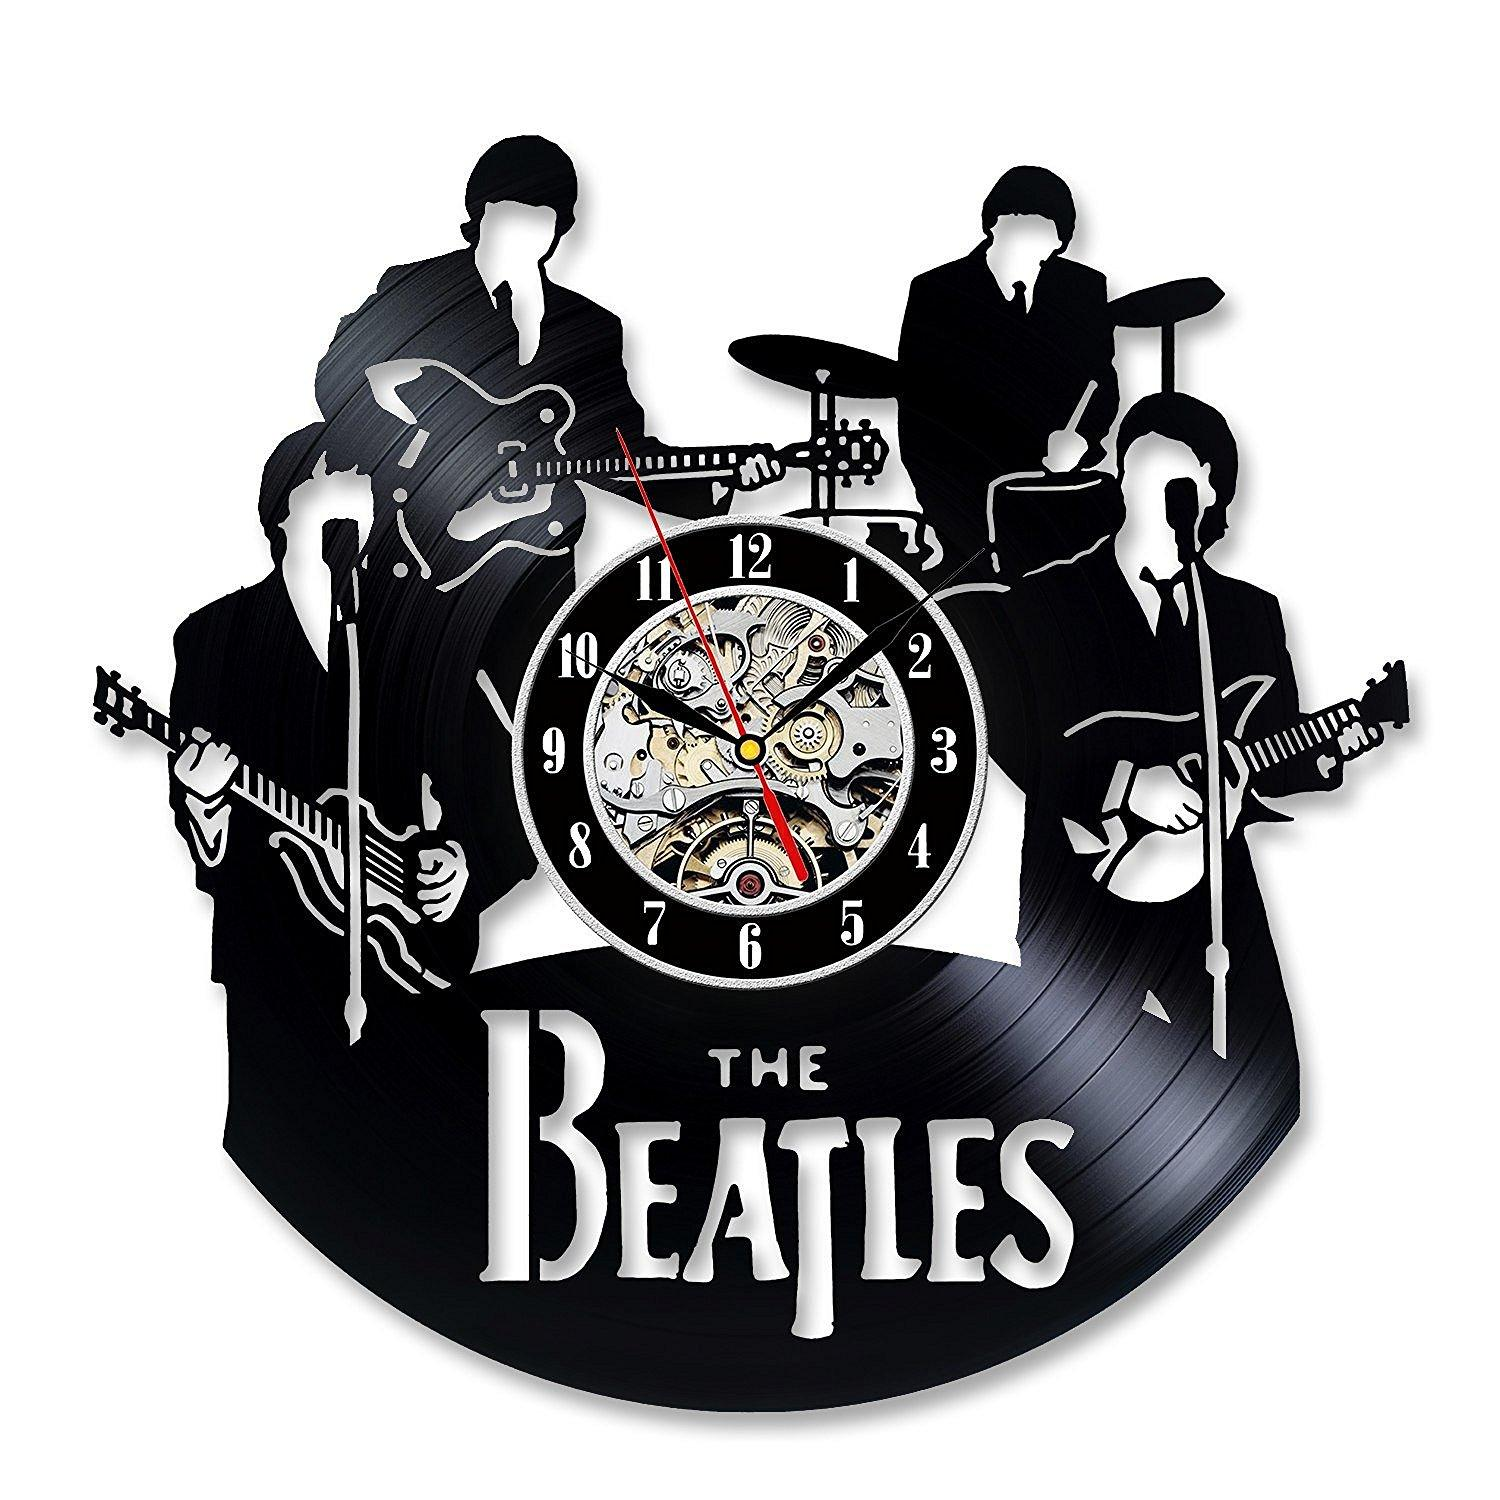 Vintage Vinyl Record Wall Clock Gift for the Beatles Fans ...